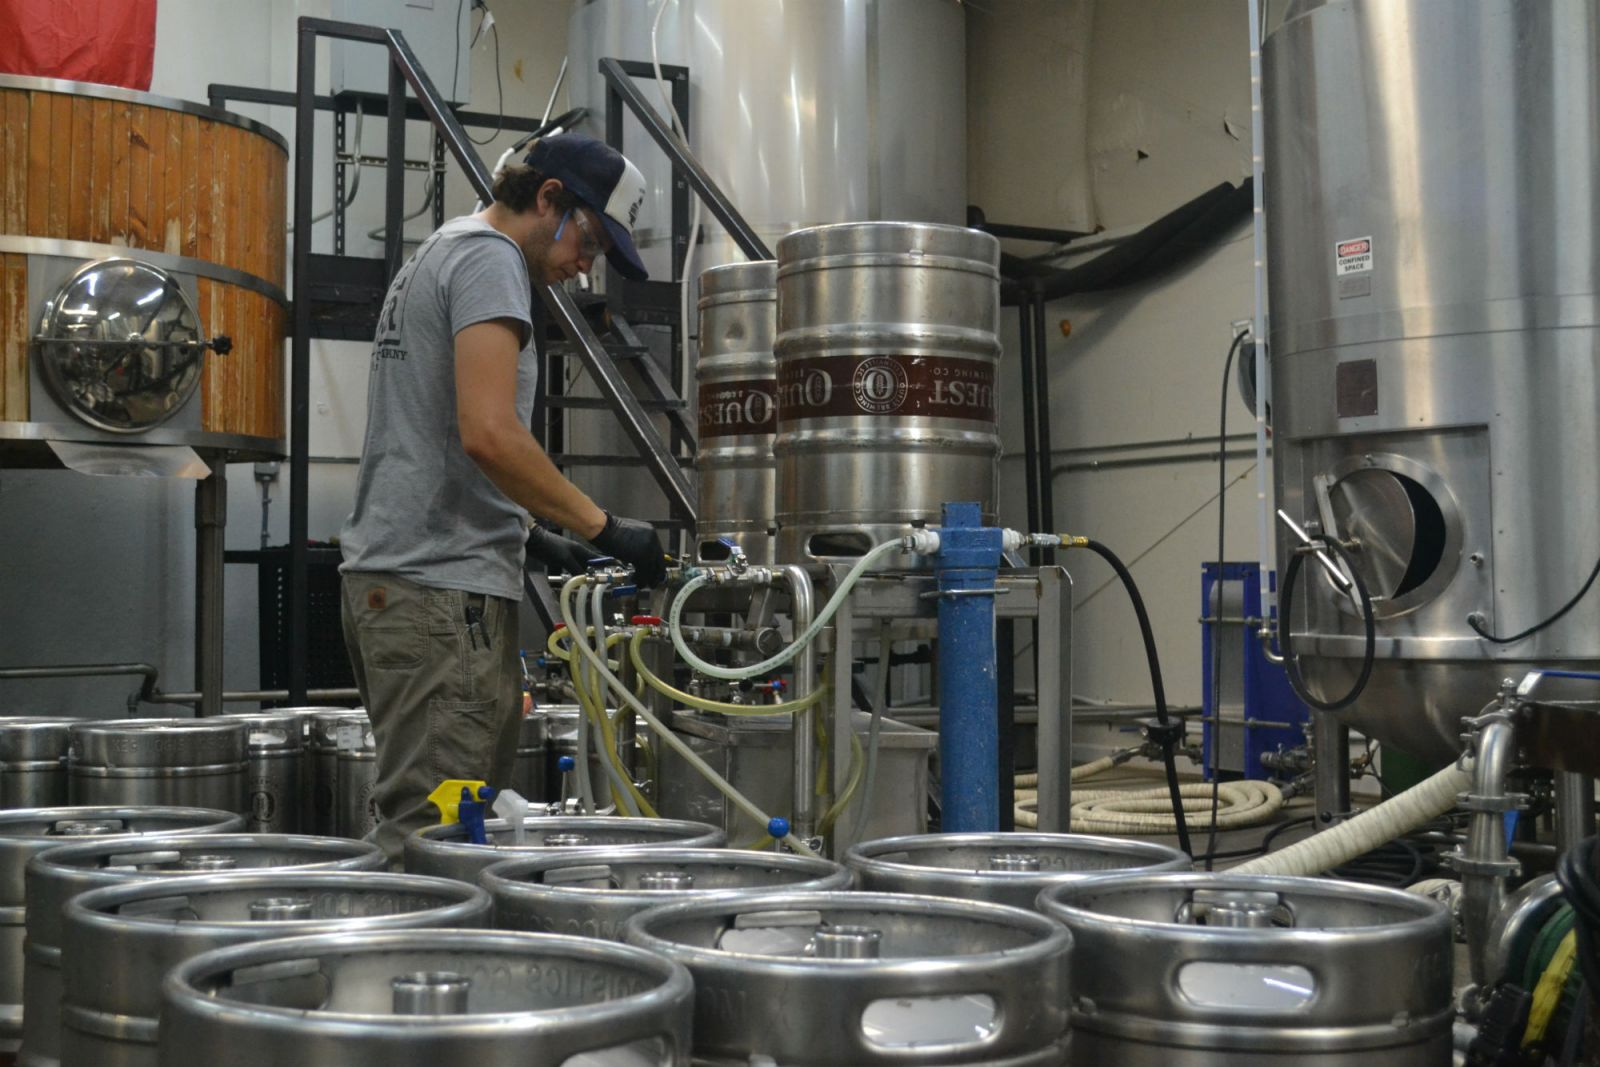 The Brewers Association puts the total economic impact of the craft beer industry in South Carolina at $650 million in 2017, which is 28th among states in terms of dollars, but 49th in impact per capita.  Quest Brewing in Greenville is one of those craft brewers. (Photo/Ross Norton)